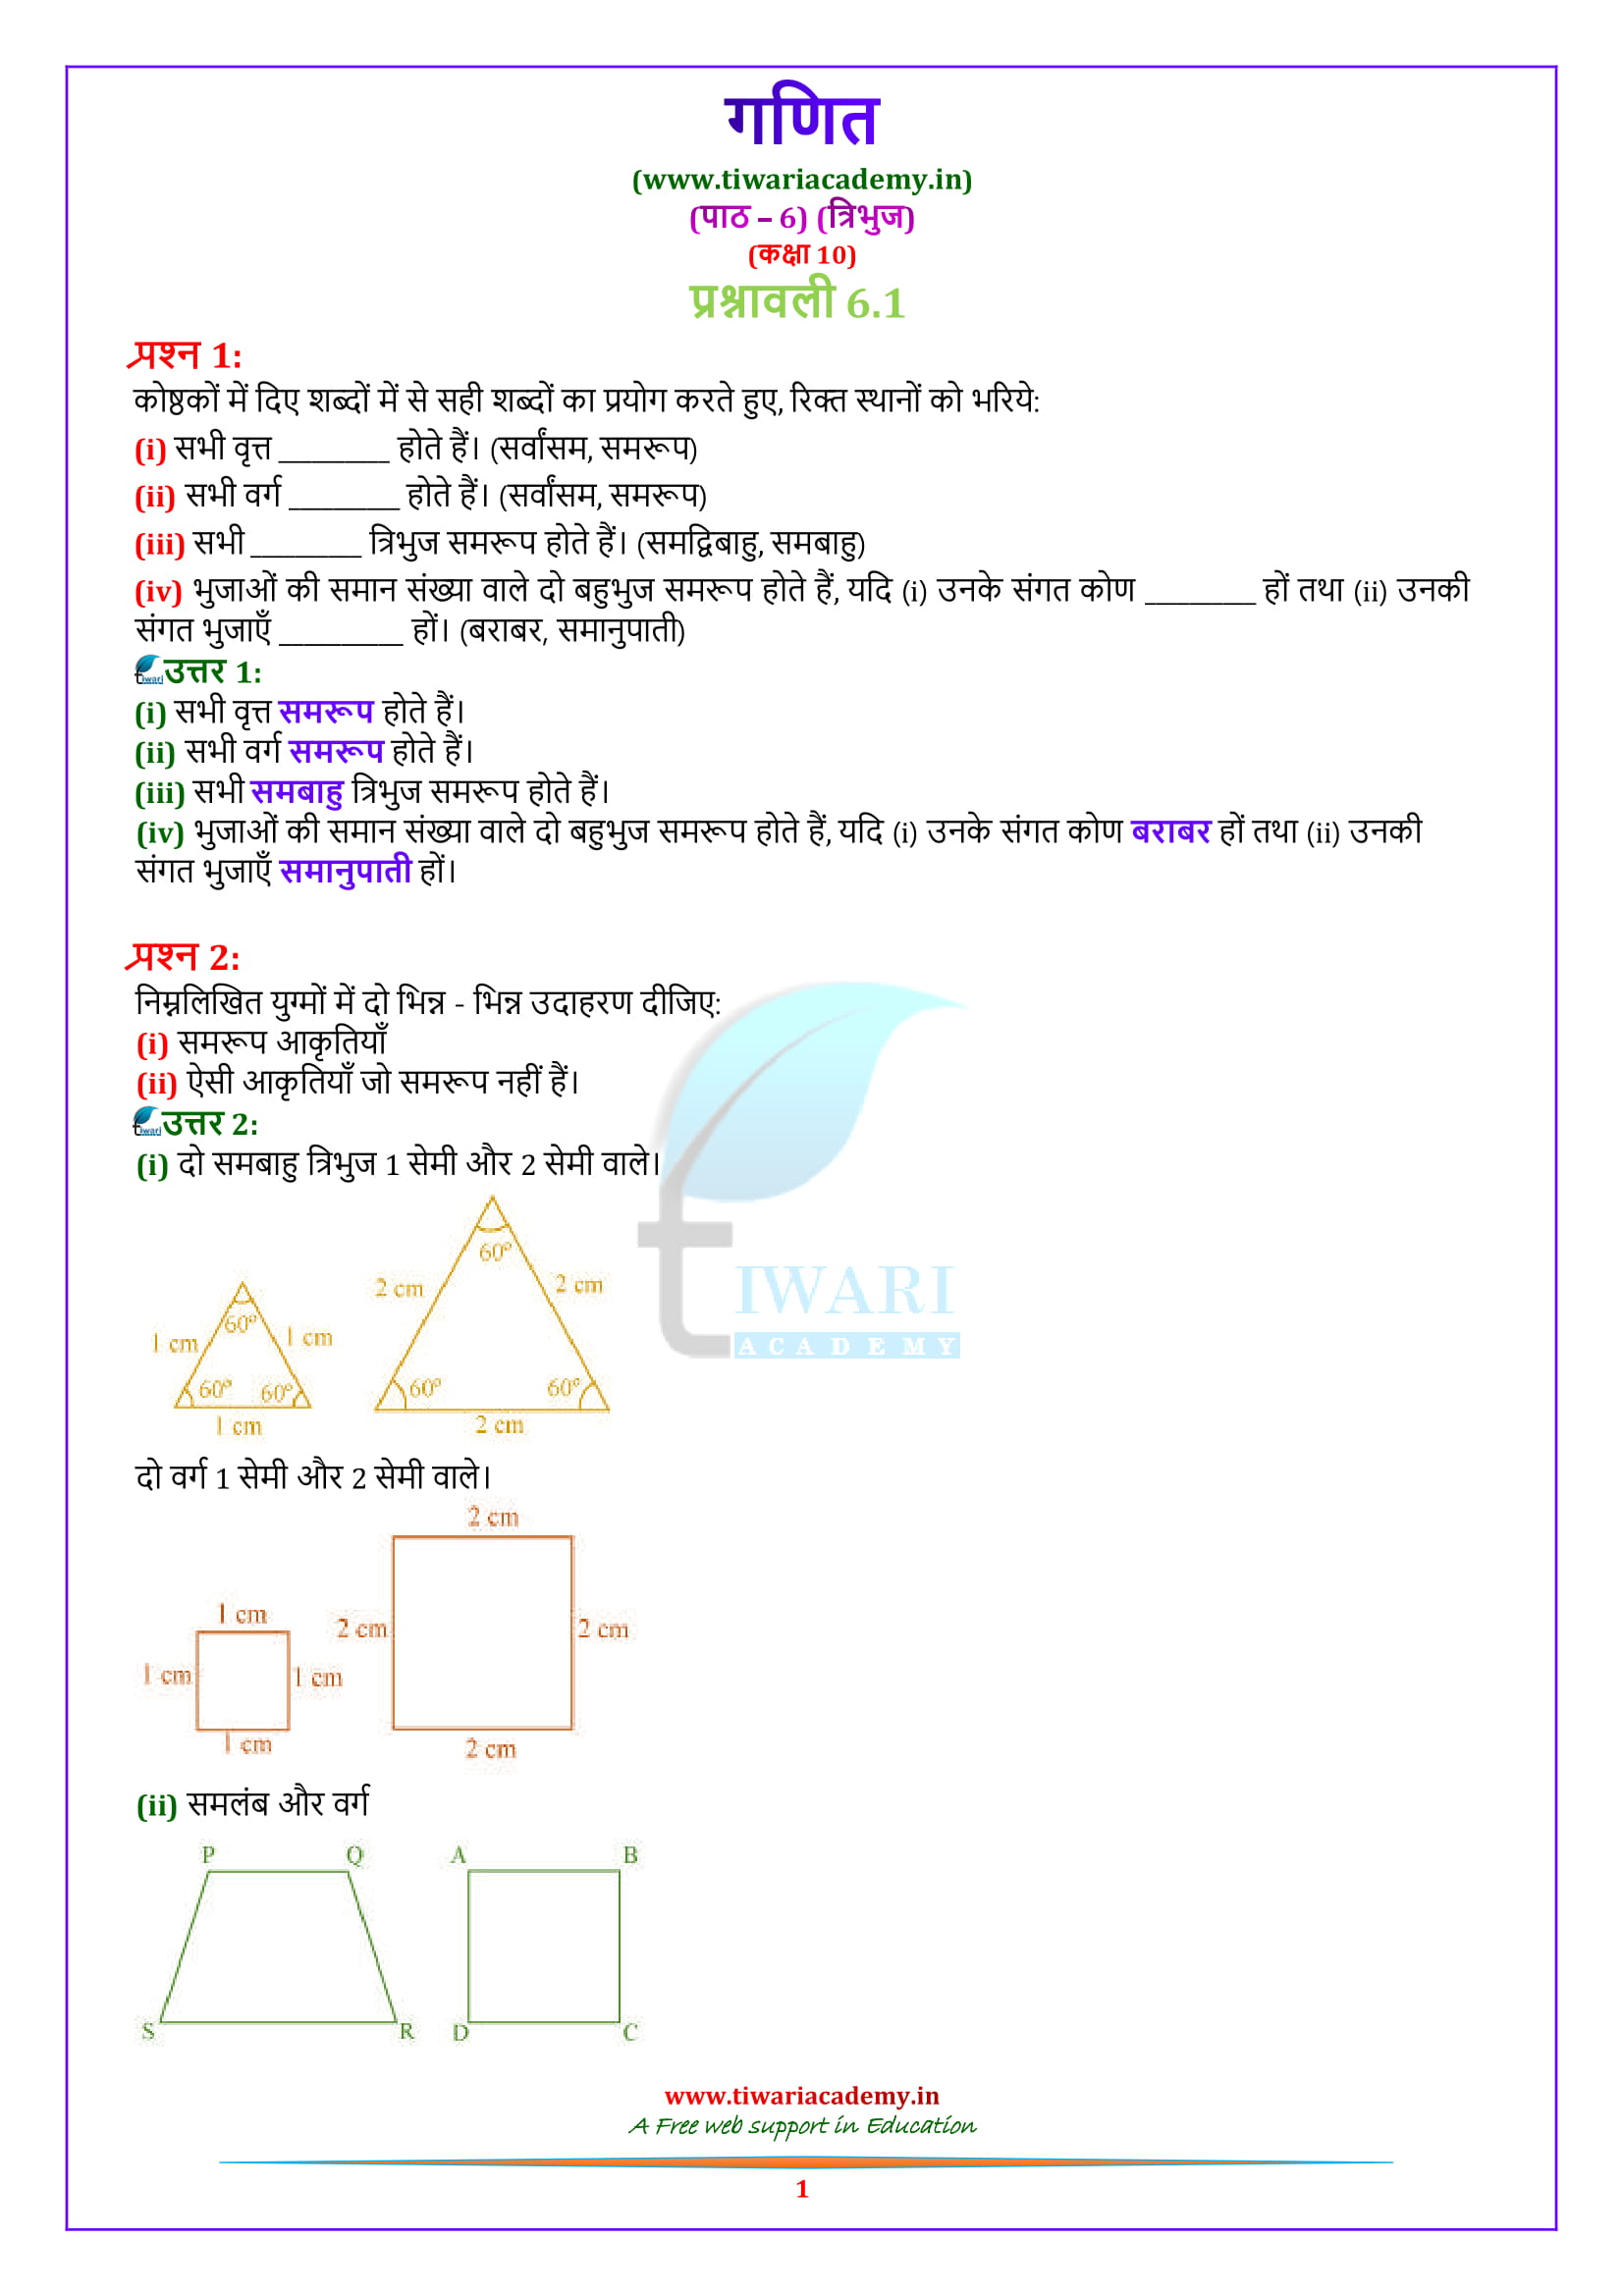 10 Maths exercise 6.1 solutions in hindi